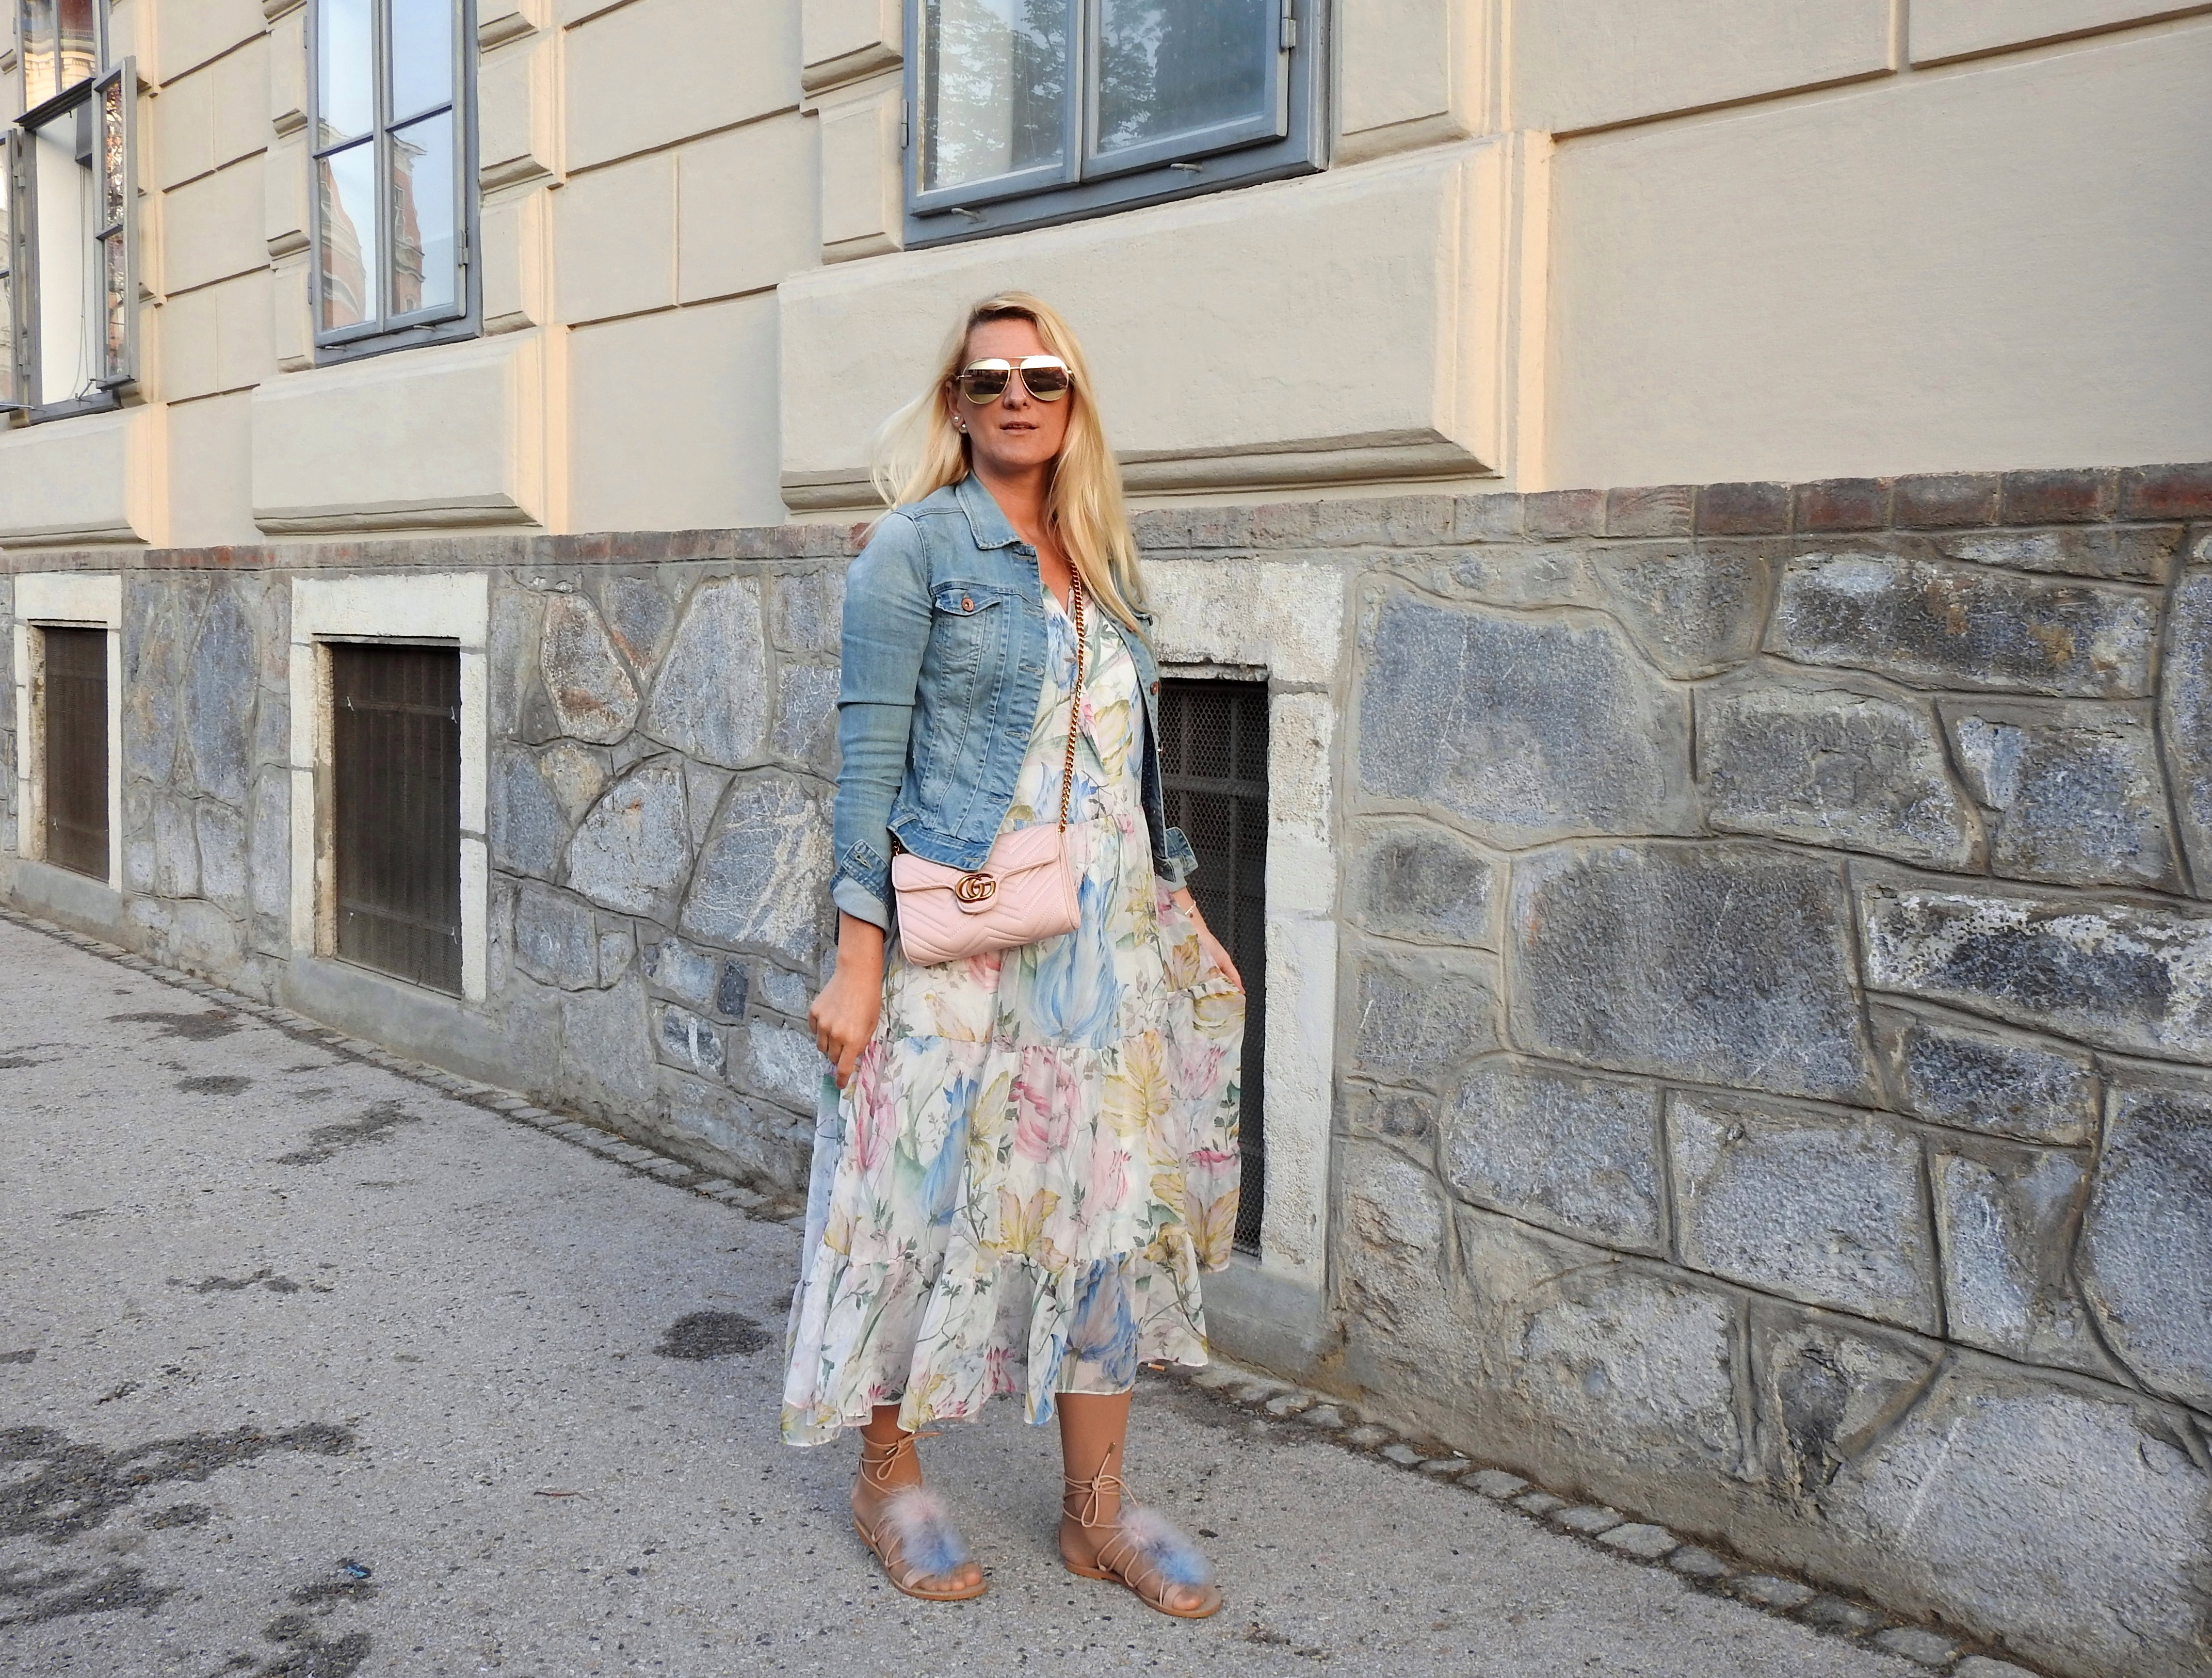 Maxidress_H&M-Gucci-Bag-Sandals-Zara-Fakefur-Fauxfur-Sunglasses-Gucci-Metallic-Denim-Jacket